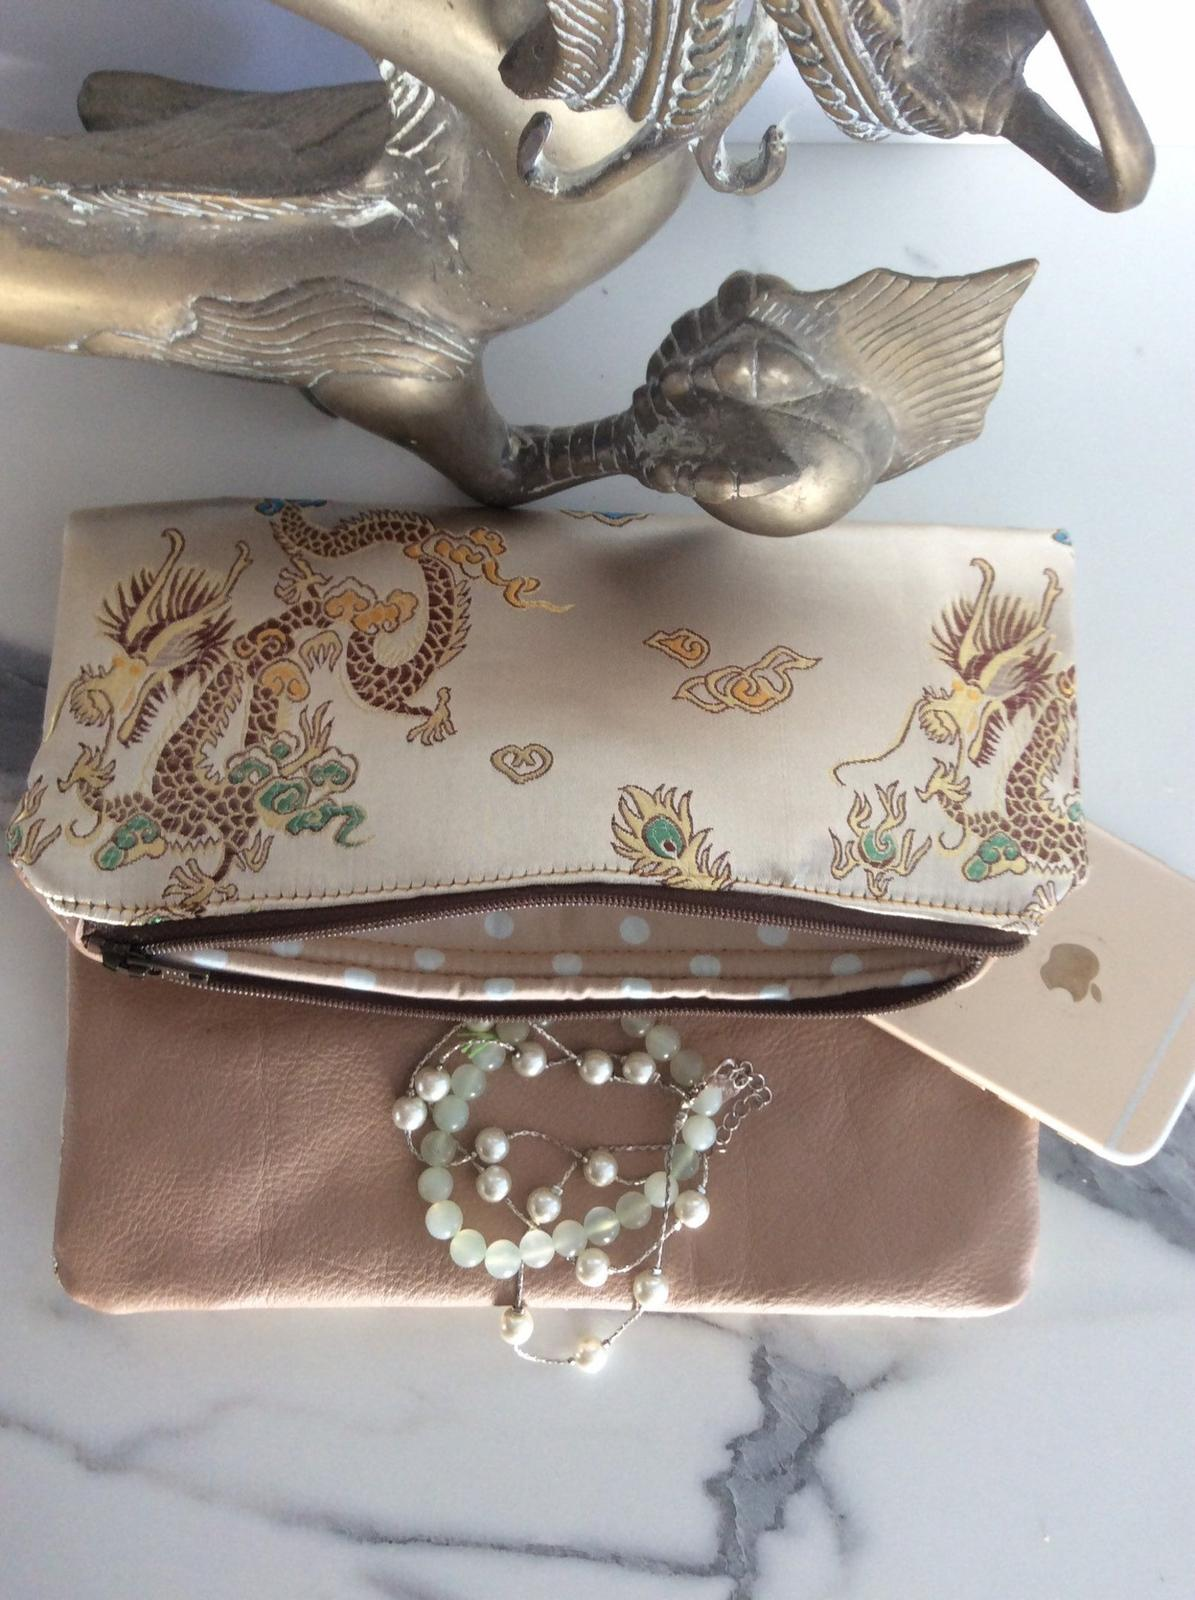 Dragon and Leather Foldover Clutch